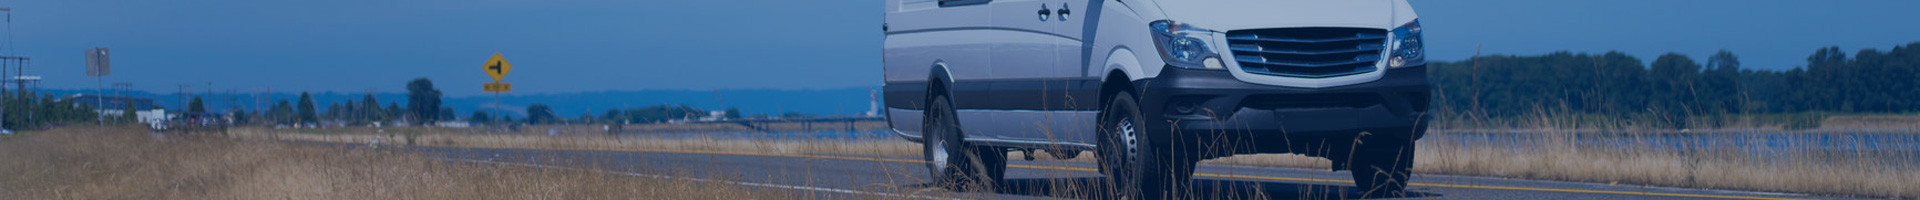 VAN DELIVERIES - Coast Freight Systems